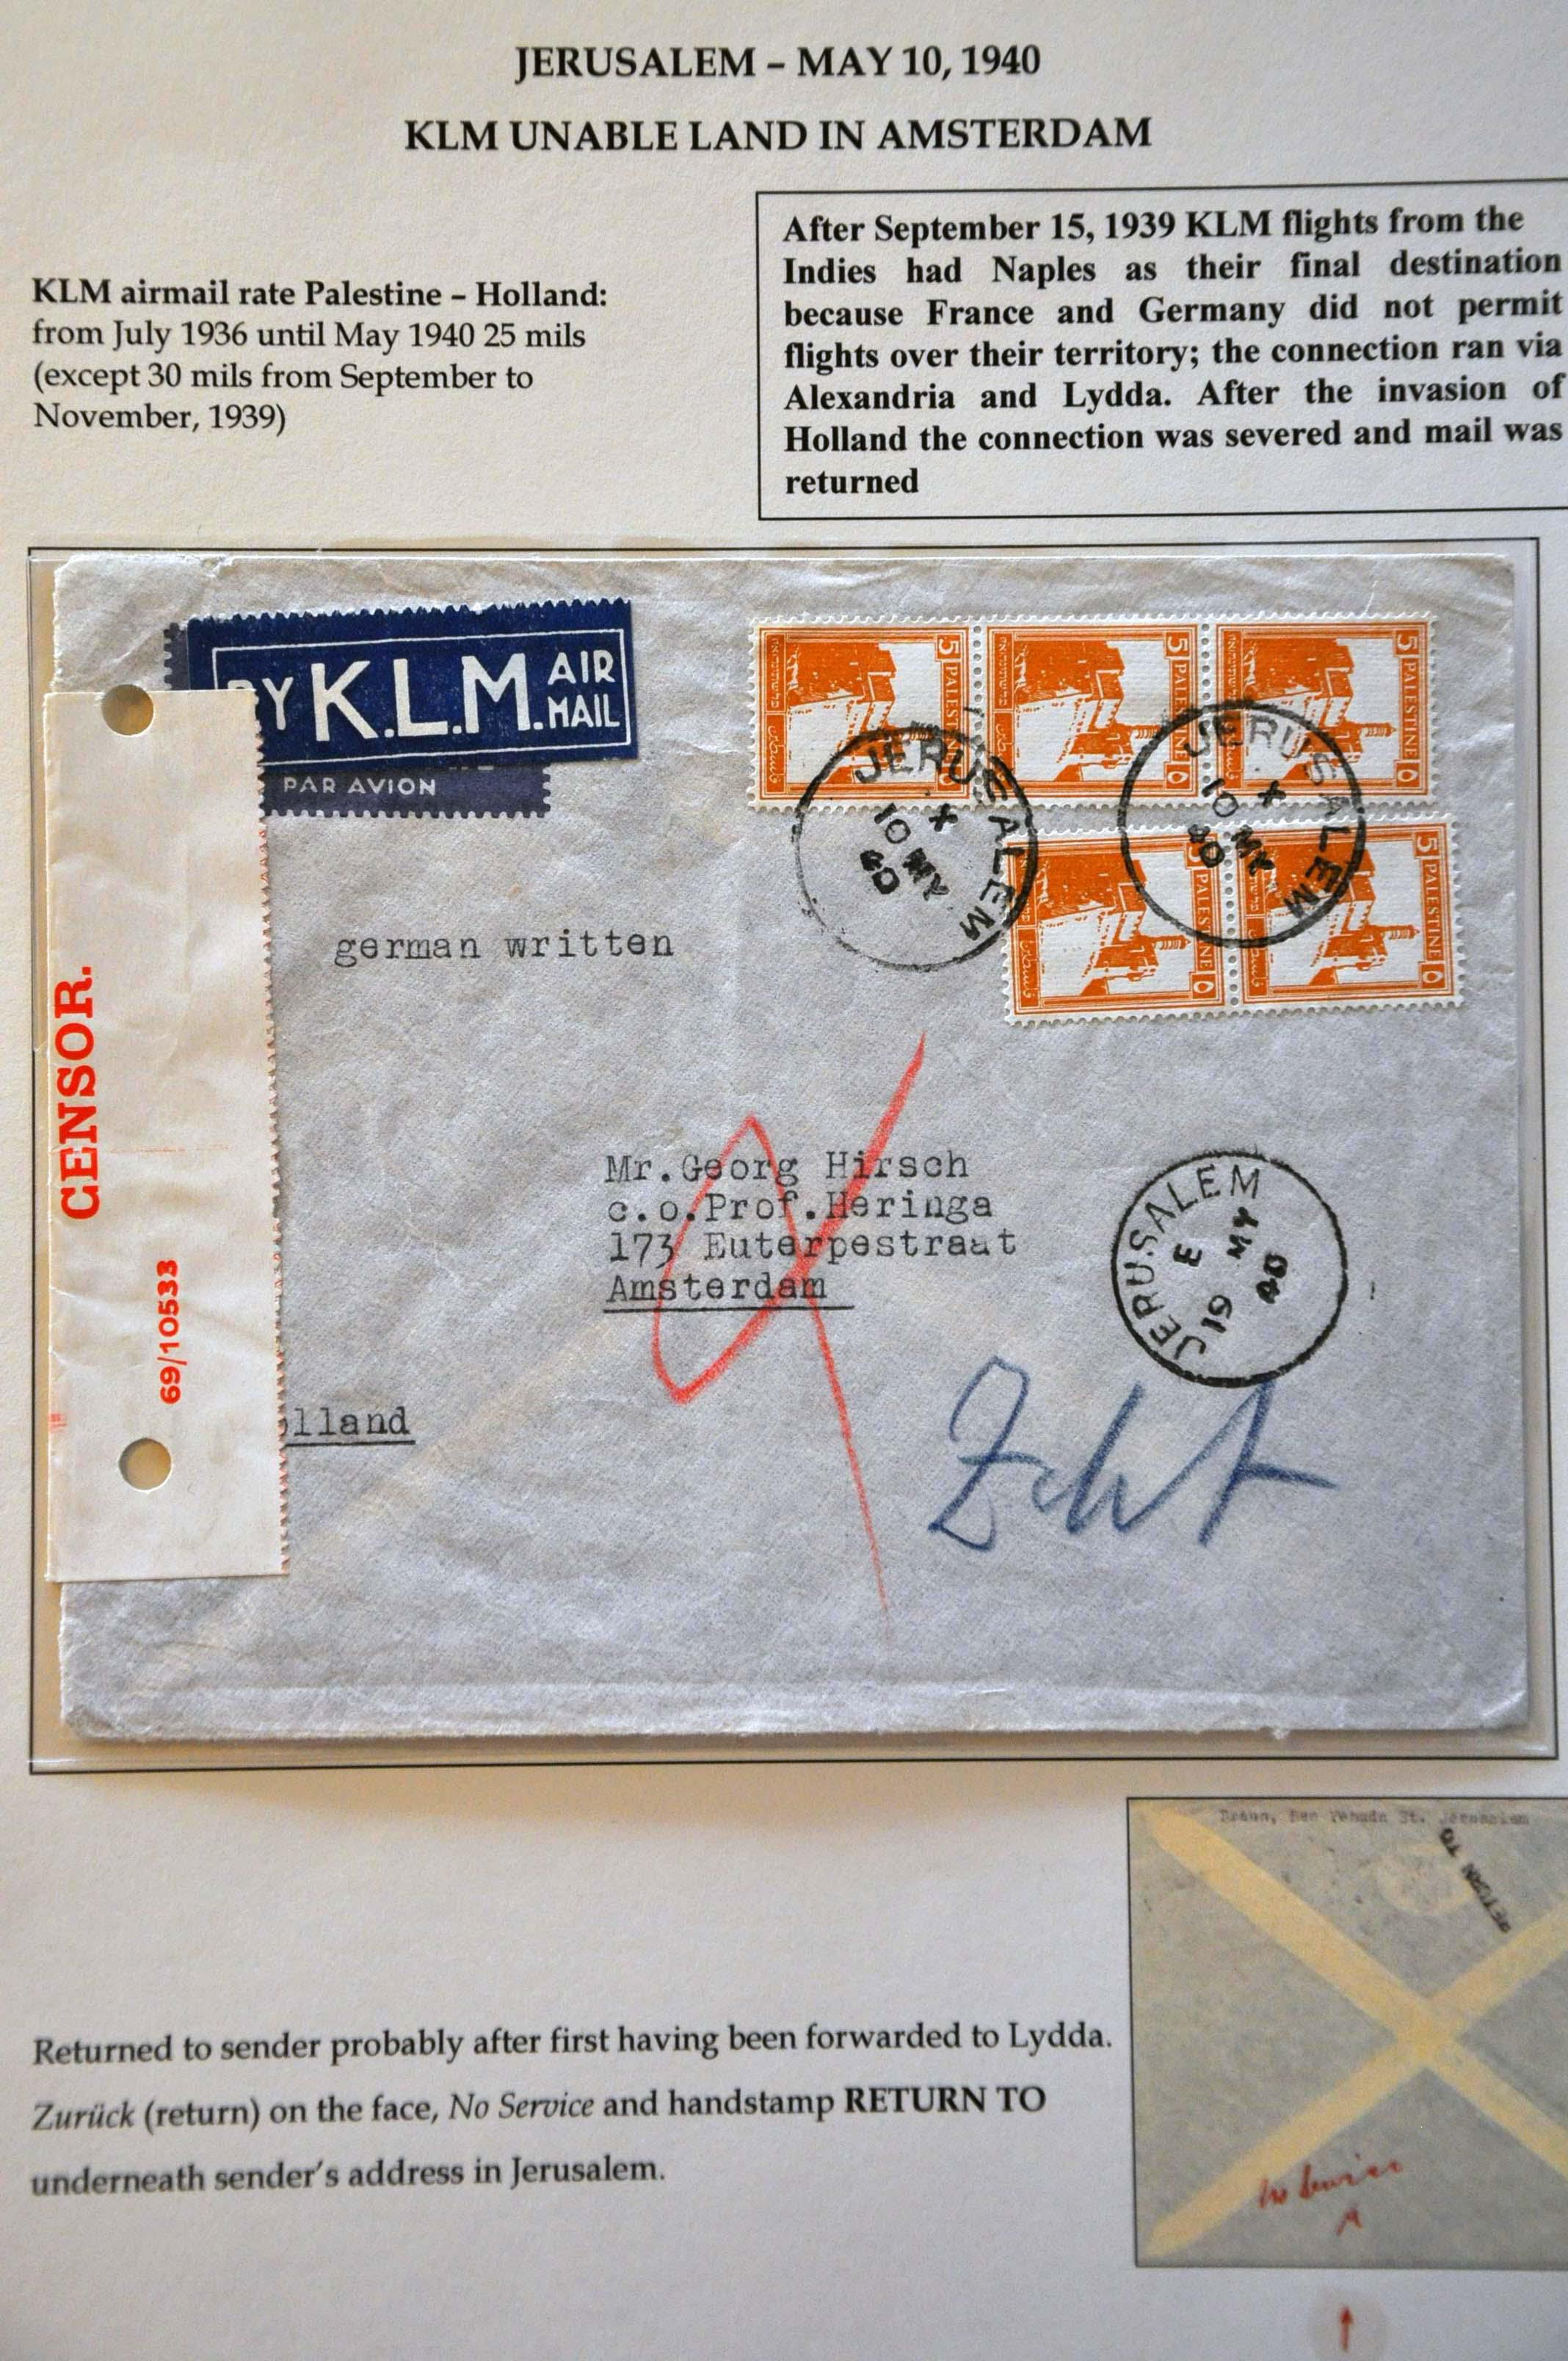 Lot 2808 - Netherlands and former colonies Netherlands -  Corinphila Veilingen Auction 244 -Netherlands and former colonies, WW2 Postal History, Bosnia, German and British colonies, Egypt. - Day 3